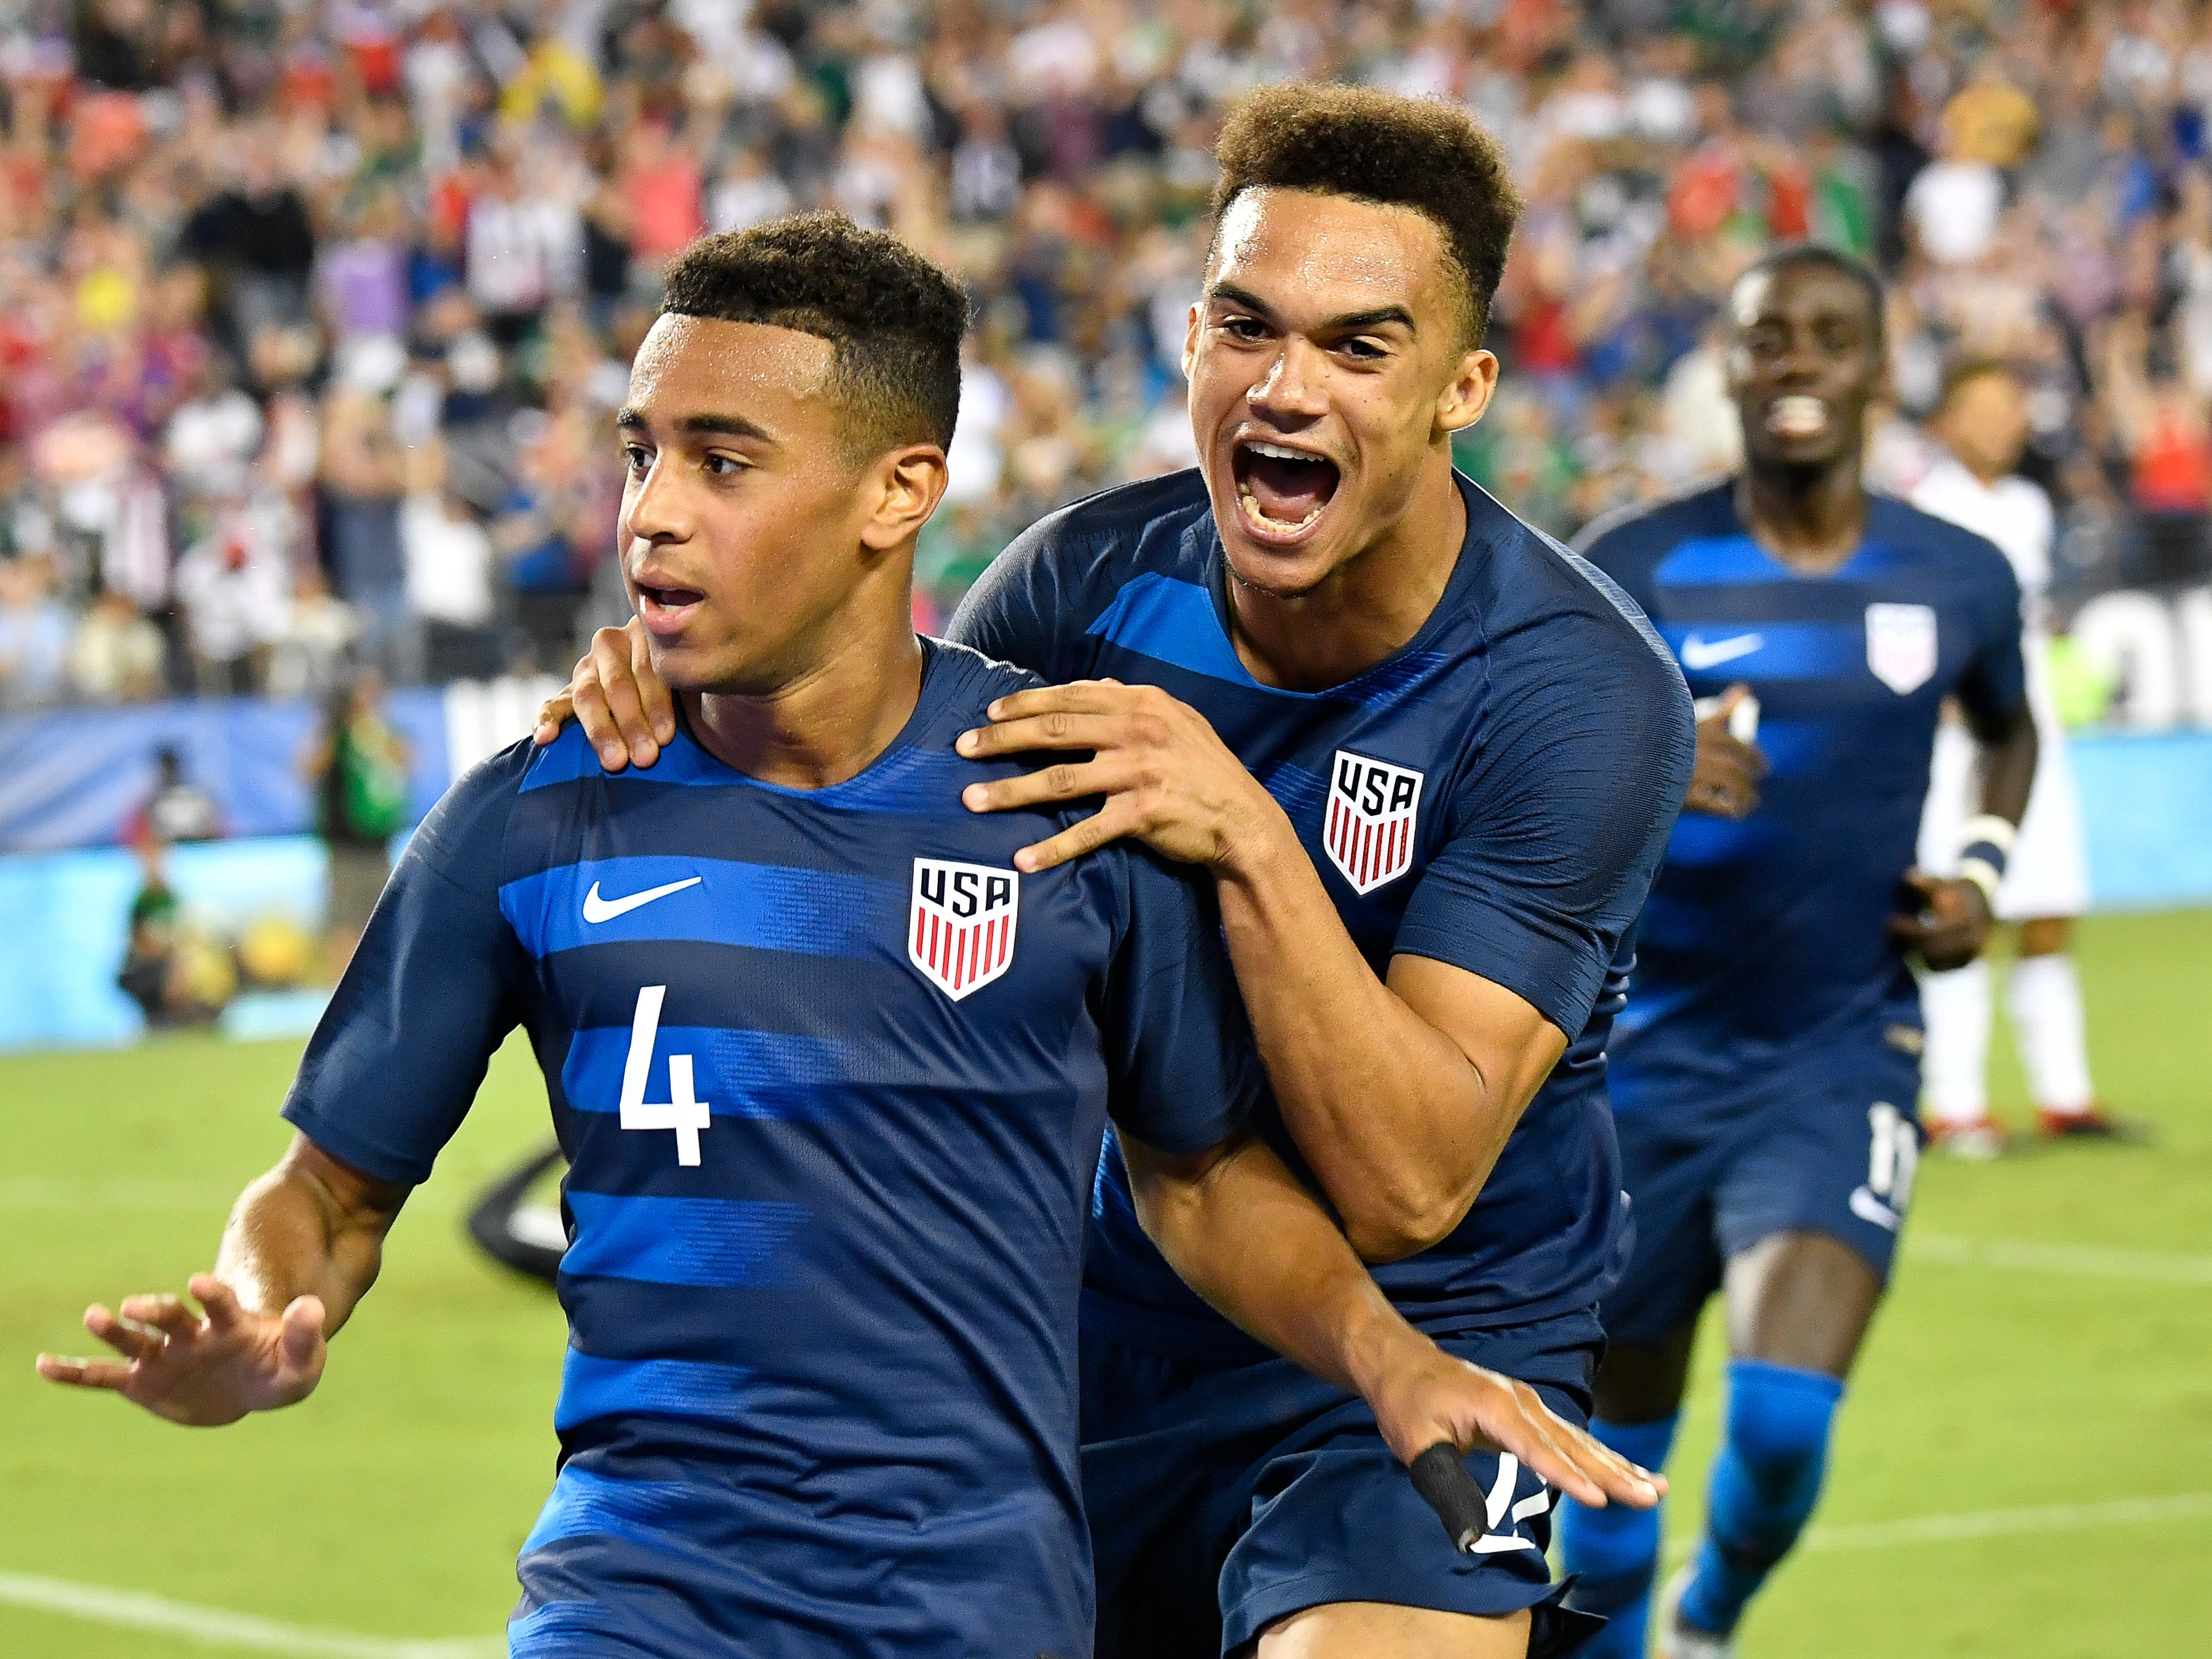 USA midfielder Tyler Adams (4) is congratulated after his goal in the second half by defender Antonee Robinson (17) during their match against Mexico at Nissan Stadium Tuesday, Sept. 11, 2018, in Nashville, Tenn.